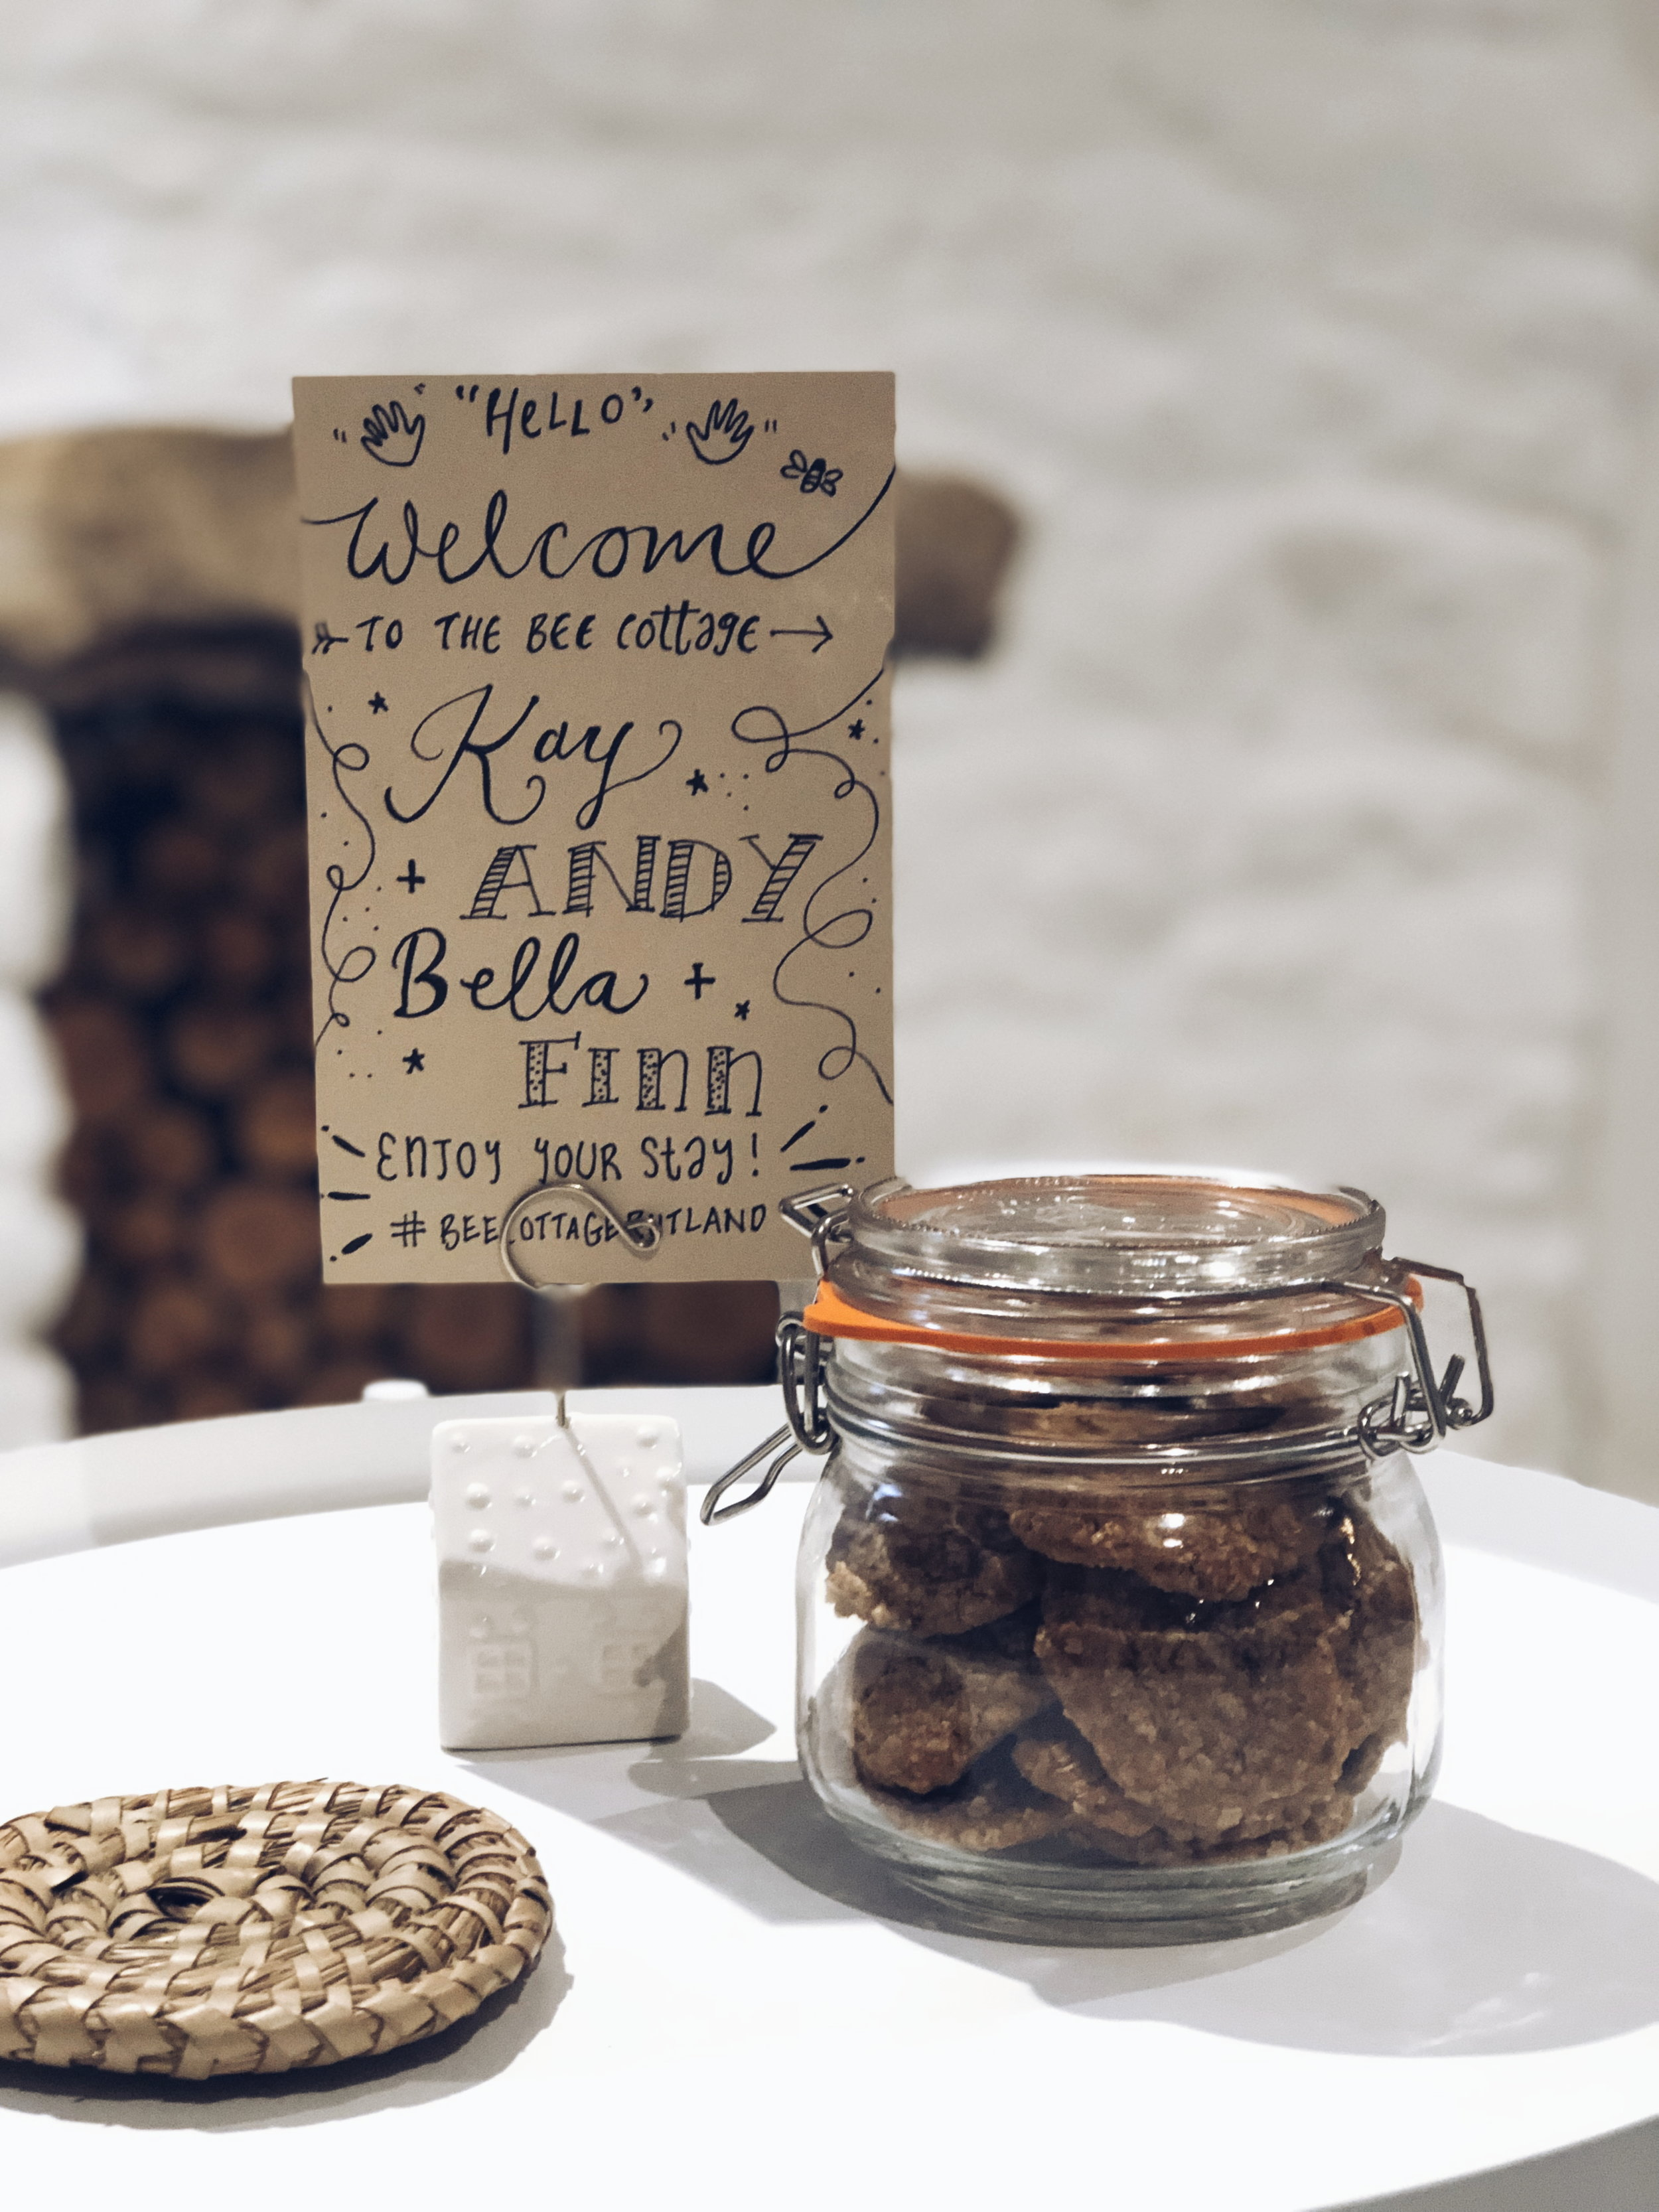 Lots of welcoming touches at the cottage like these biscuits and note